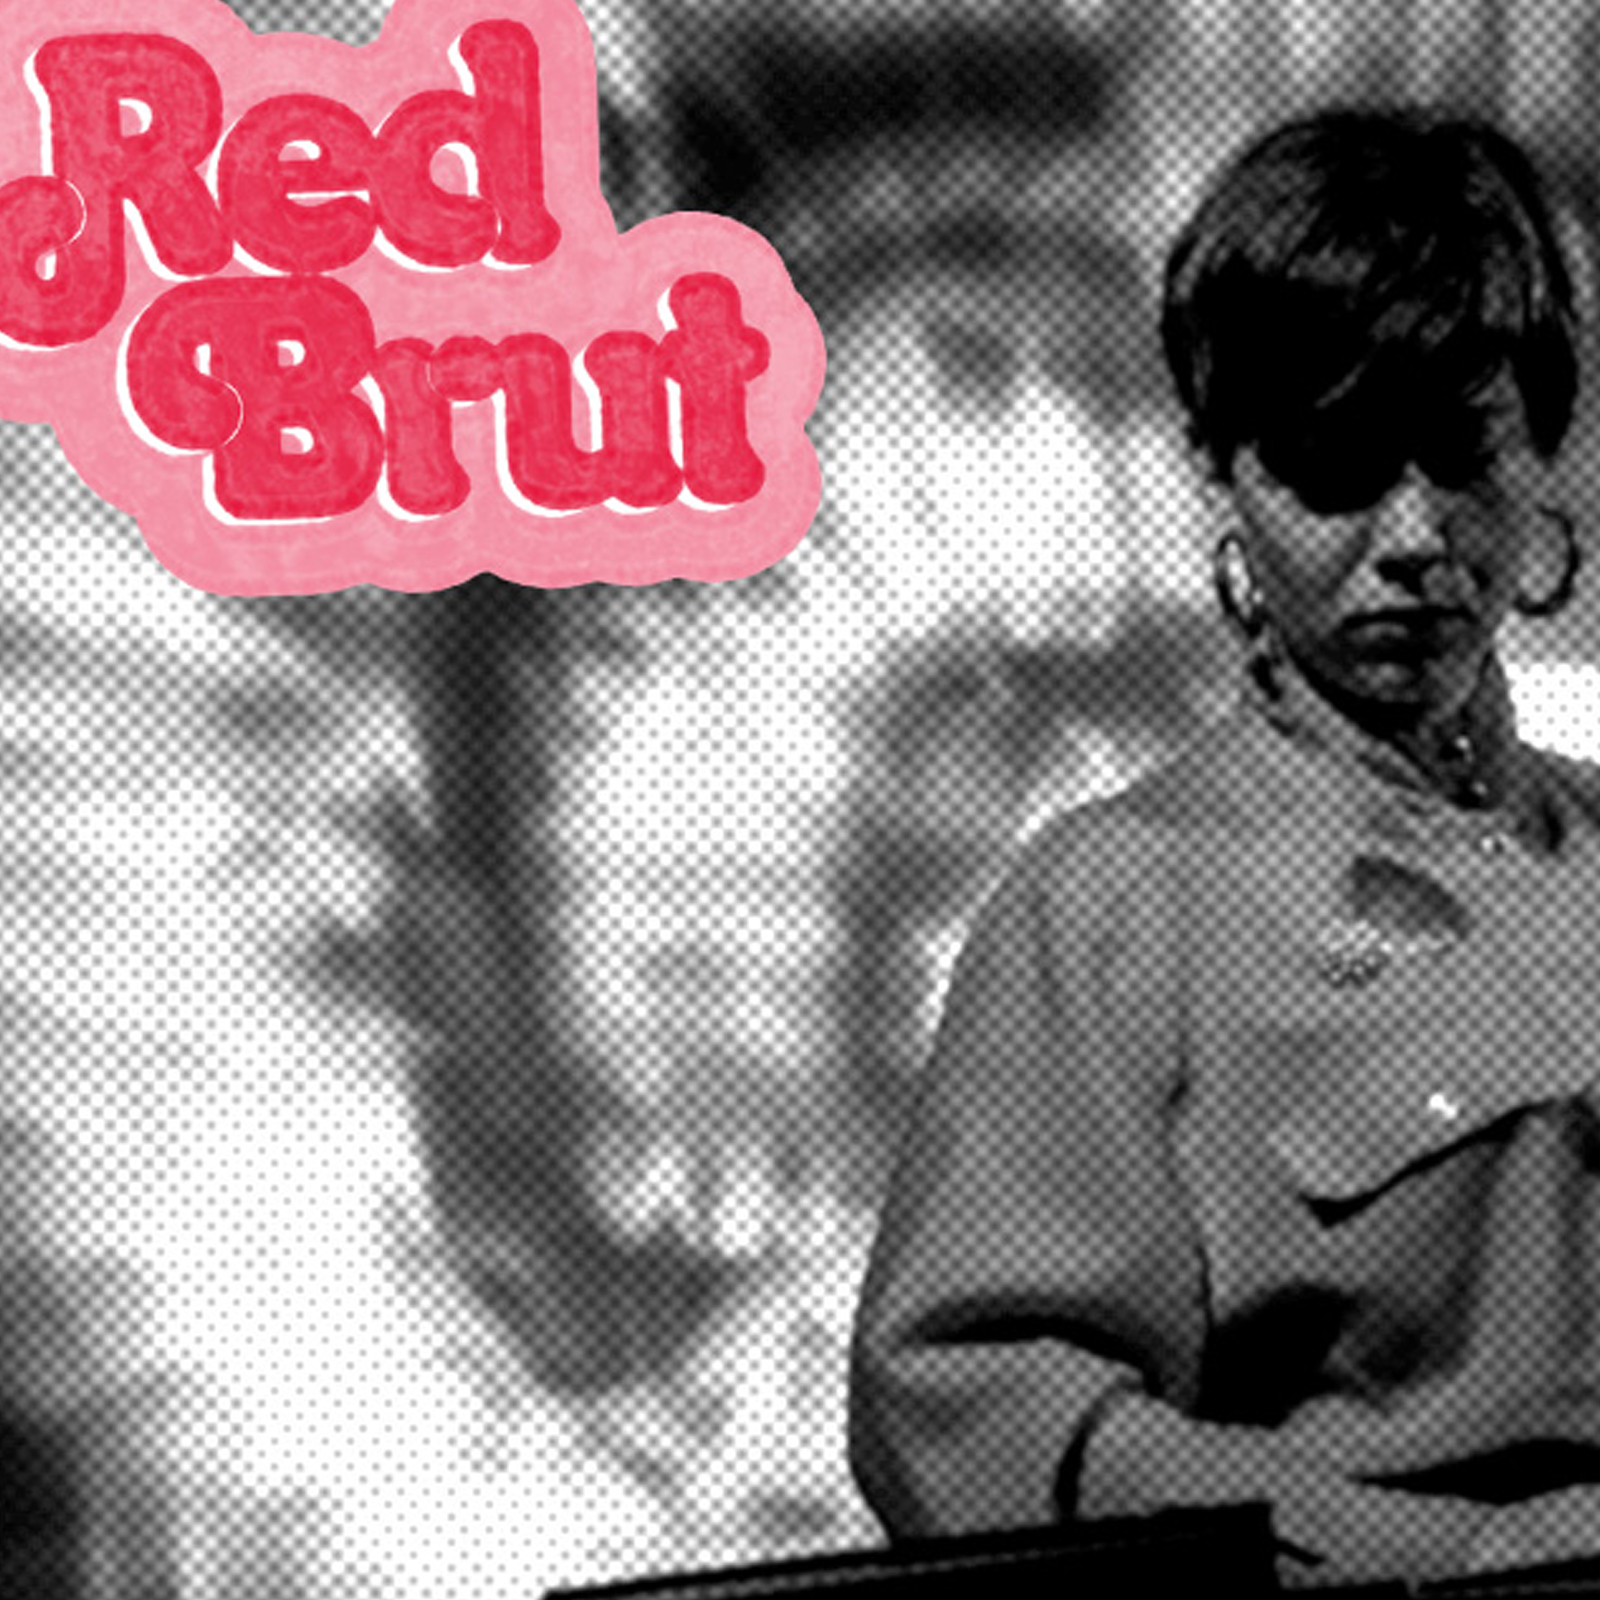 PSAS 2018   Red Brut   Lineup